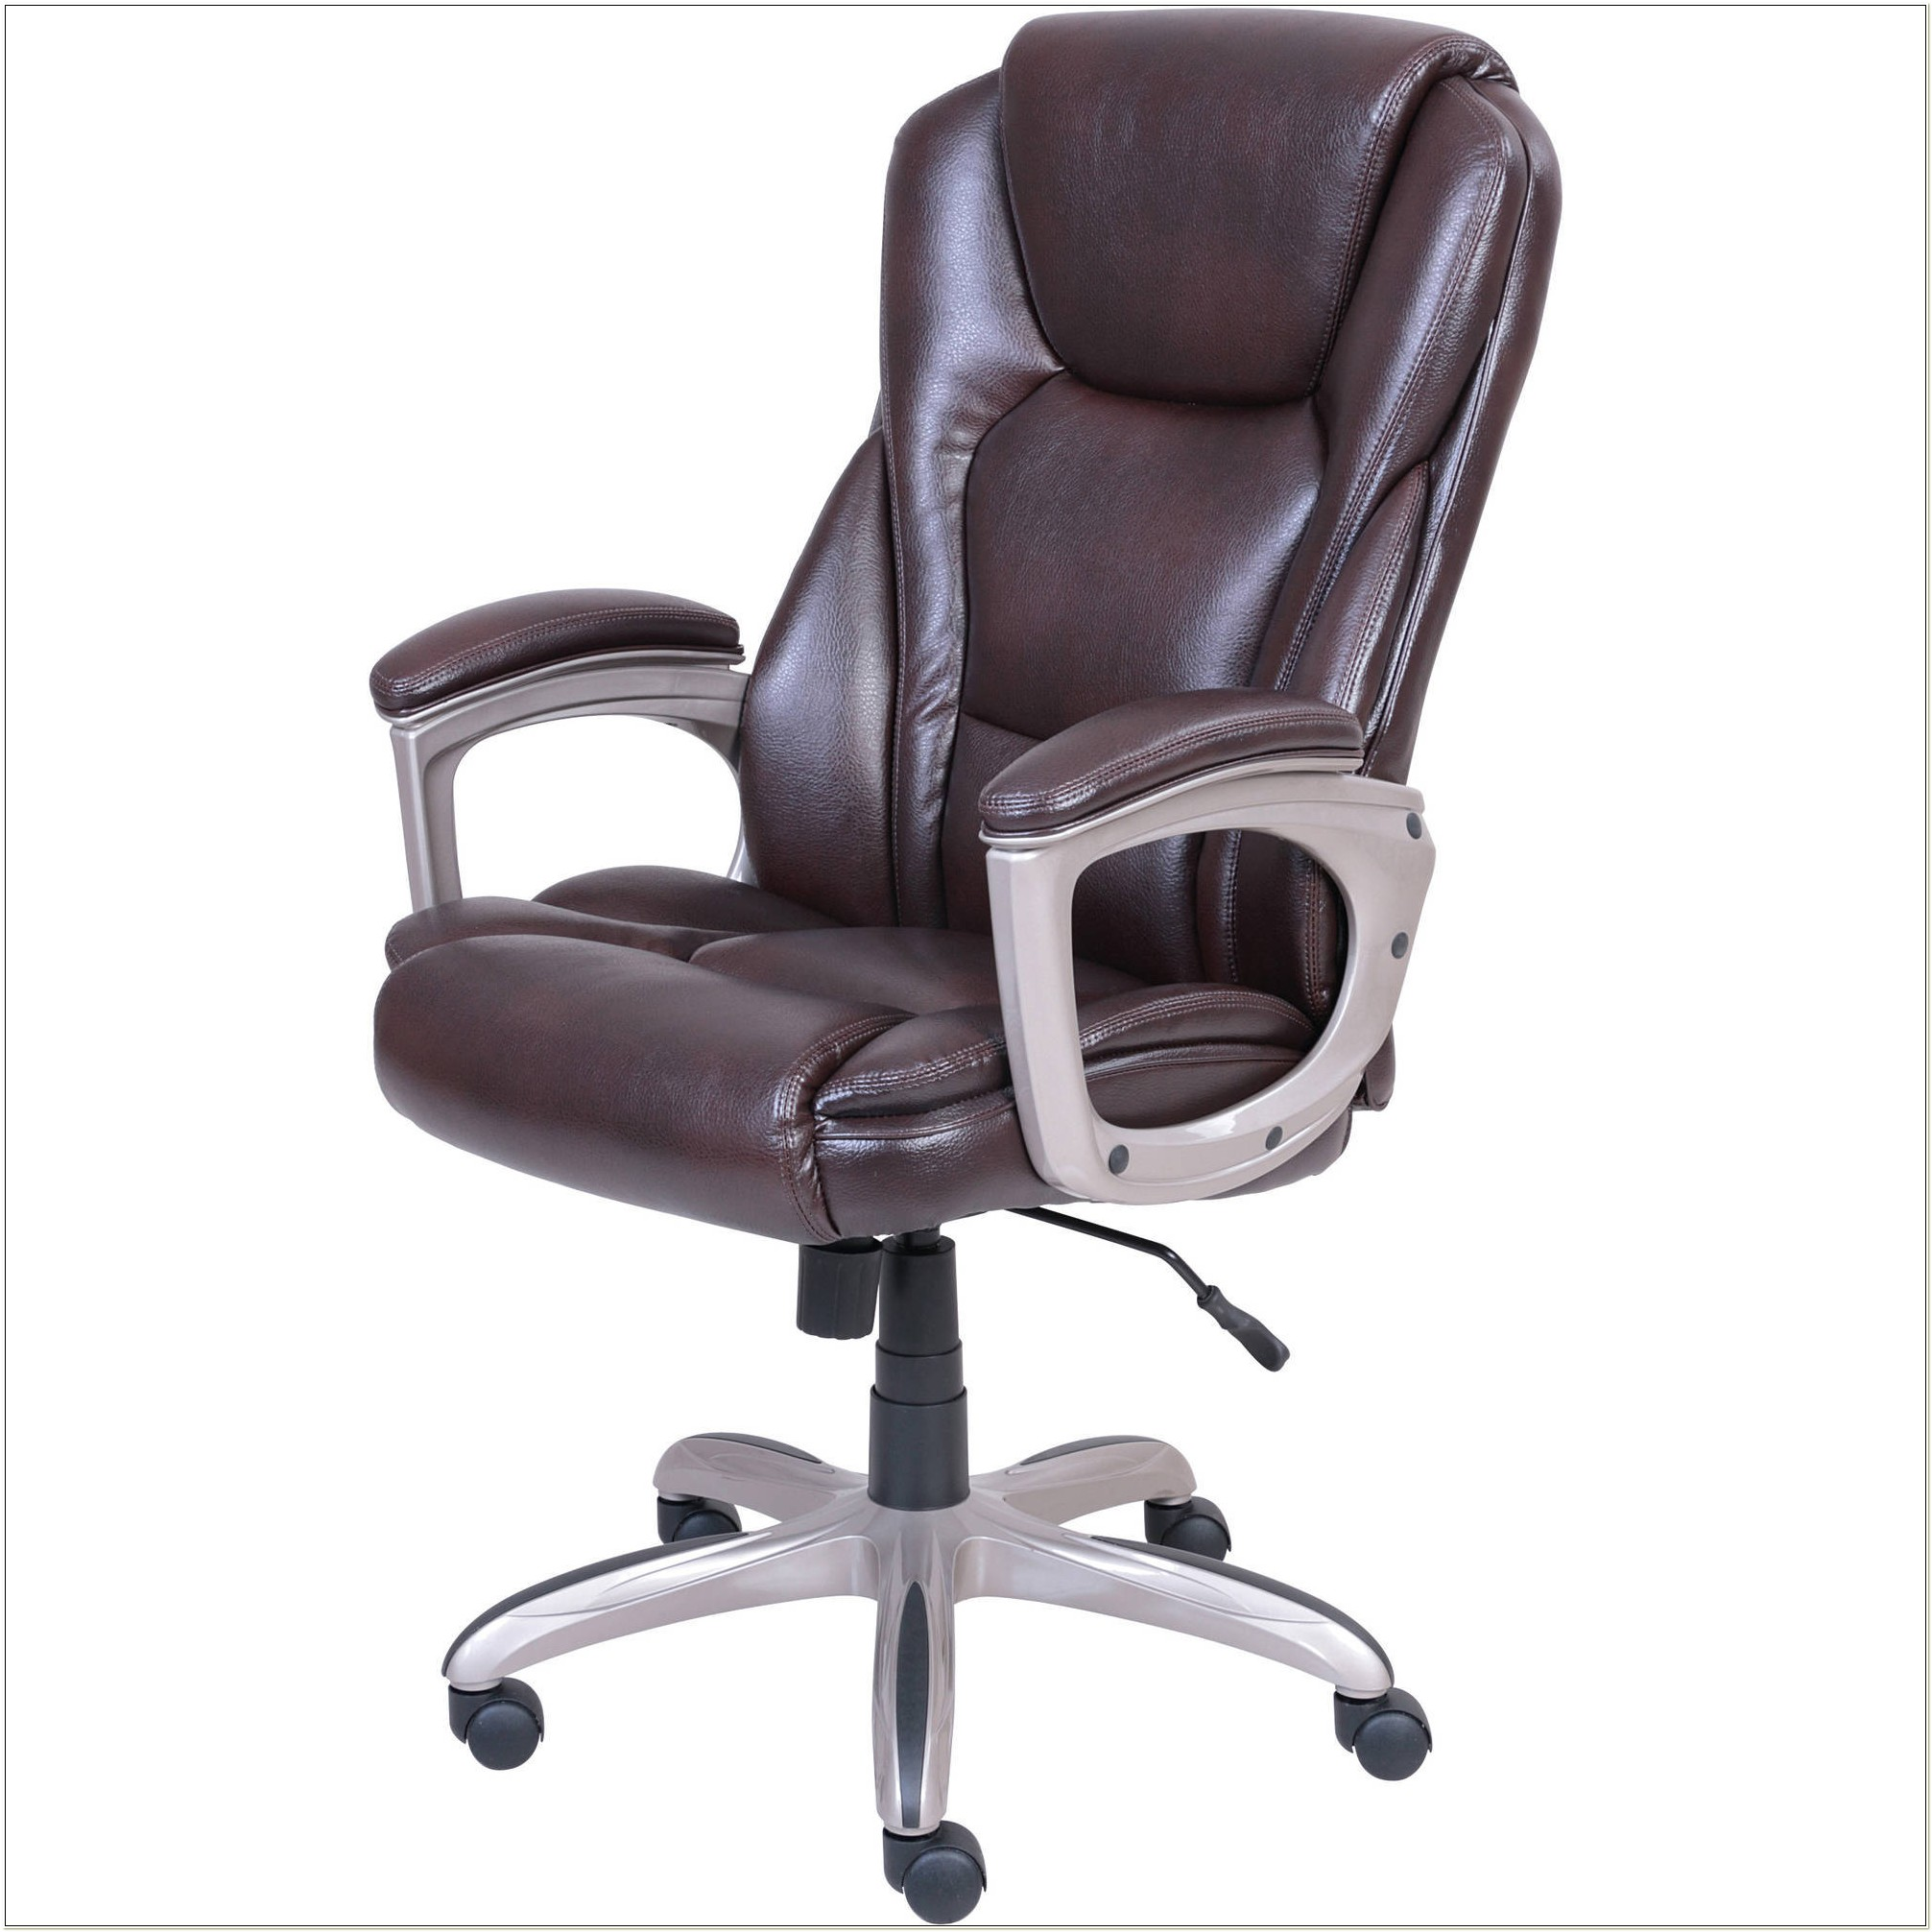 Office Chair Walmart Black Friday